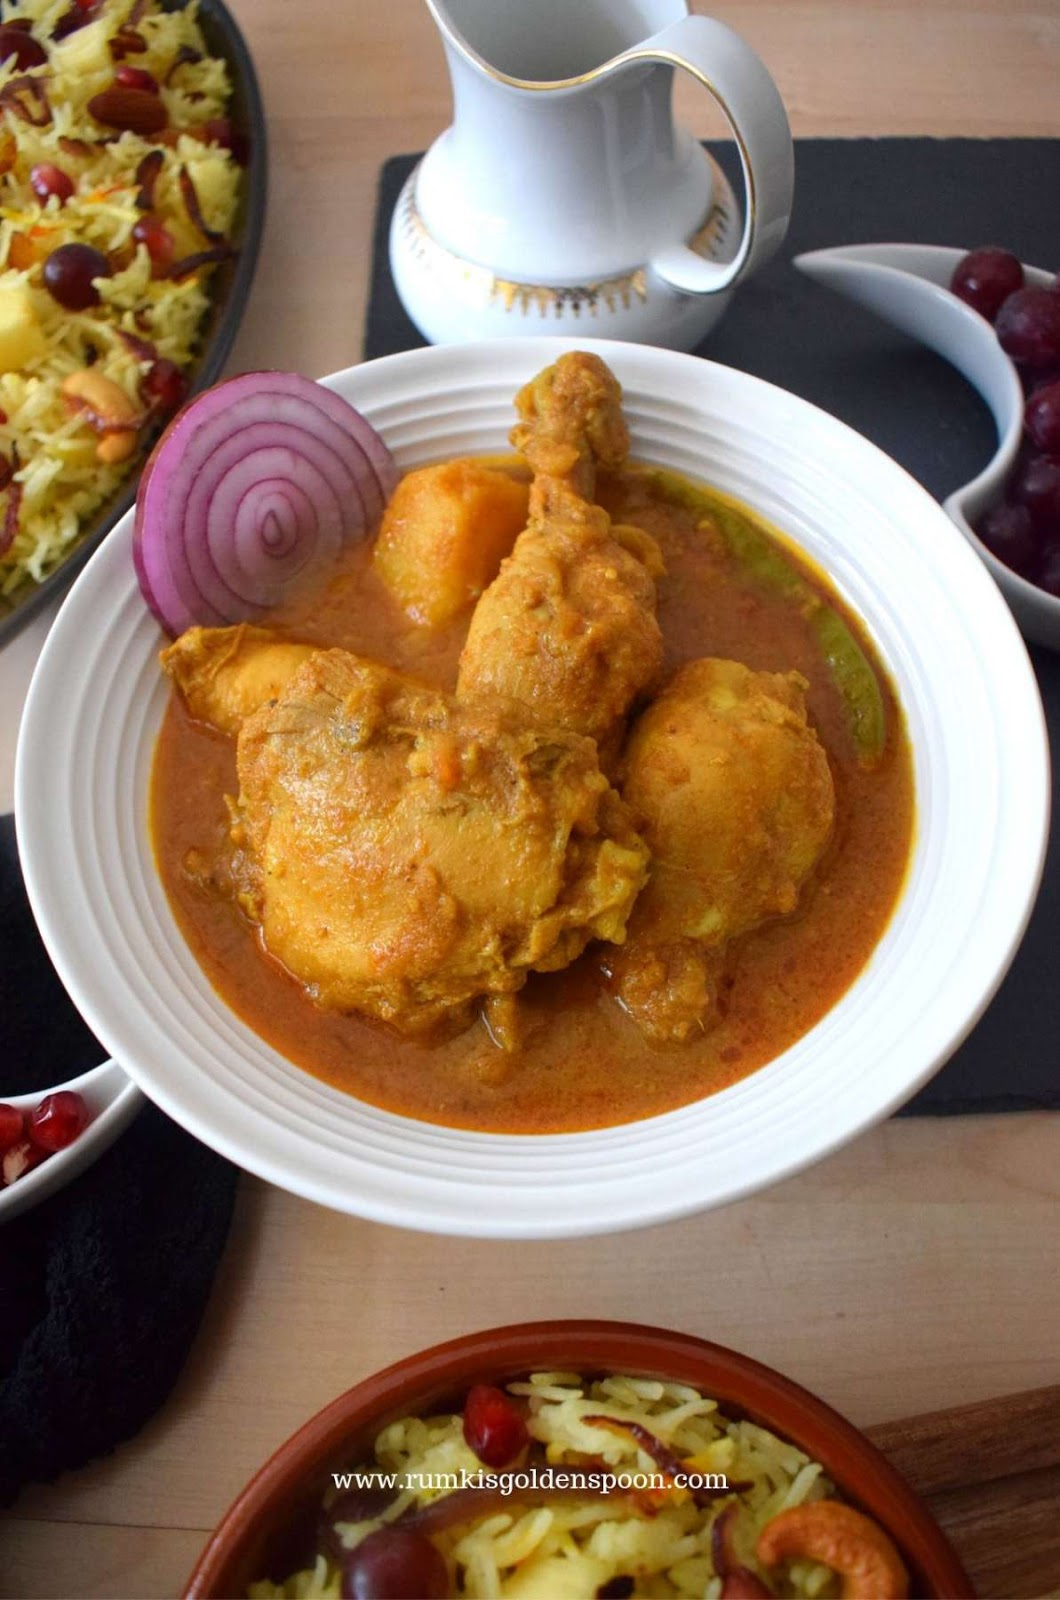 Chicken Curry recipes, Home-style chicken curry, Easy chicken curry, chicken curry recipe indian, authentic chicken curry recipes, spicy chicken curry recipes, Bengali chicken curry, chicken recipes, Indian recipes, Rumki's Golden Spoon